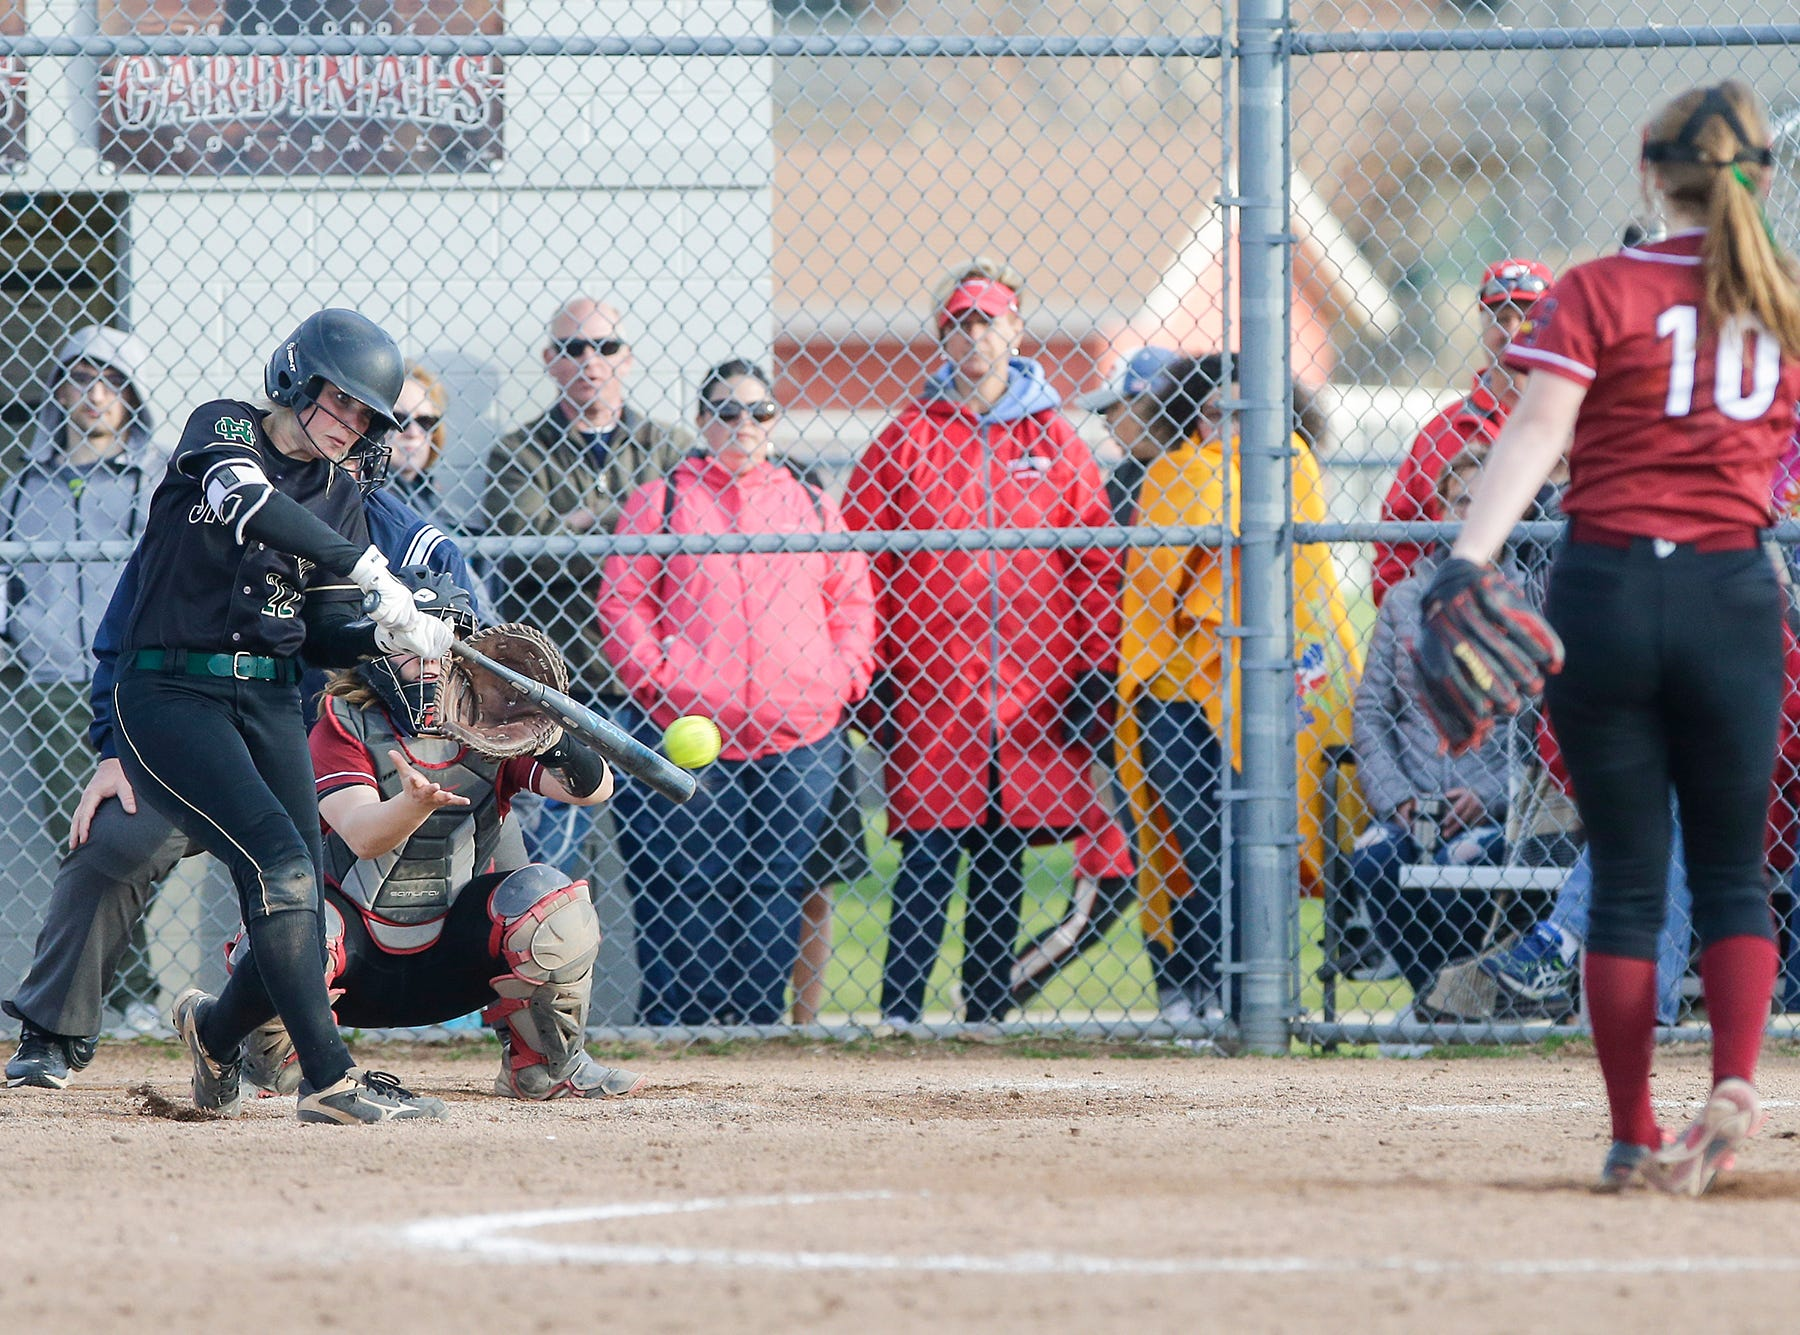 Oshkosh North High School softball's Brooke Ellestad swings at a pitch against Fond du Lac High School during their game Friday, April 26, 2019 in Fond du Lac, Wis. Doug Raflik/USA TODAY NETWORK-Wisconsin